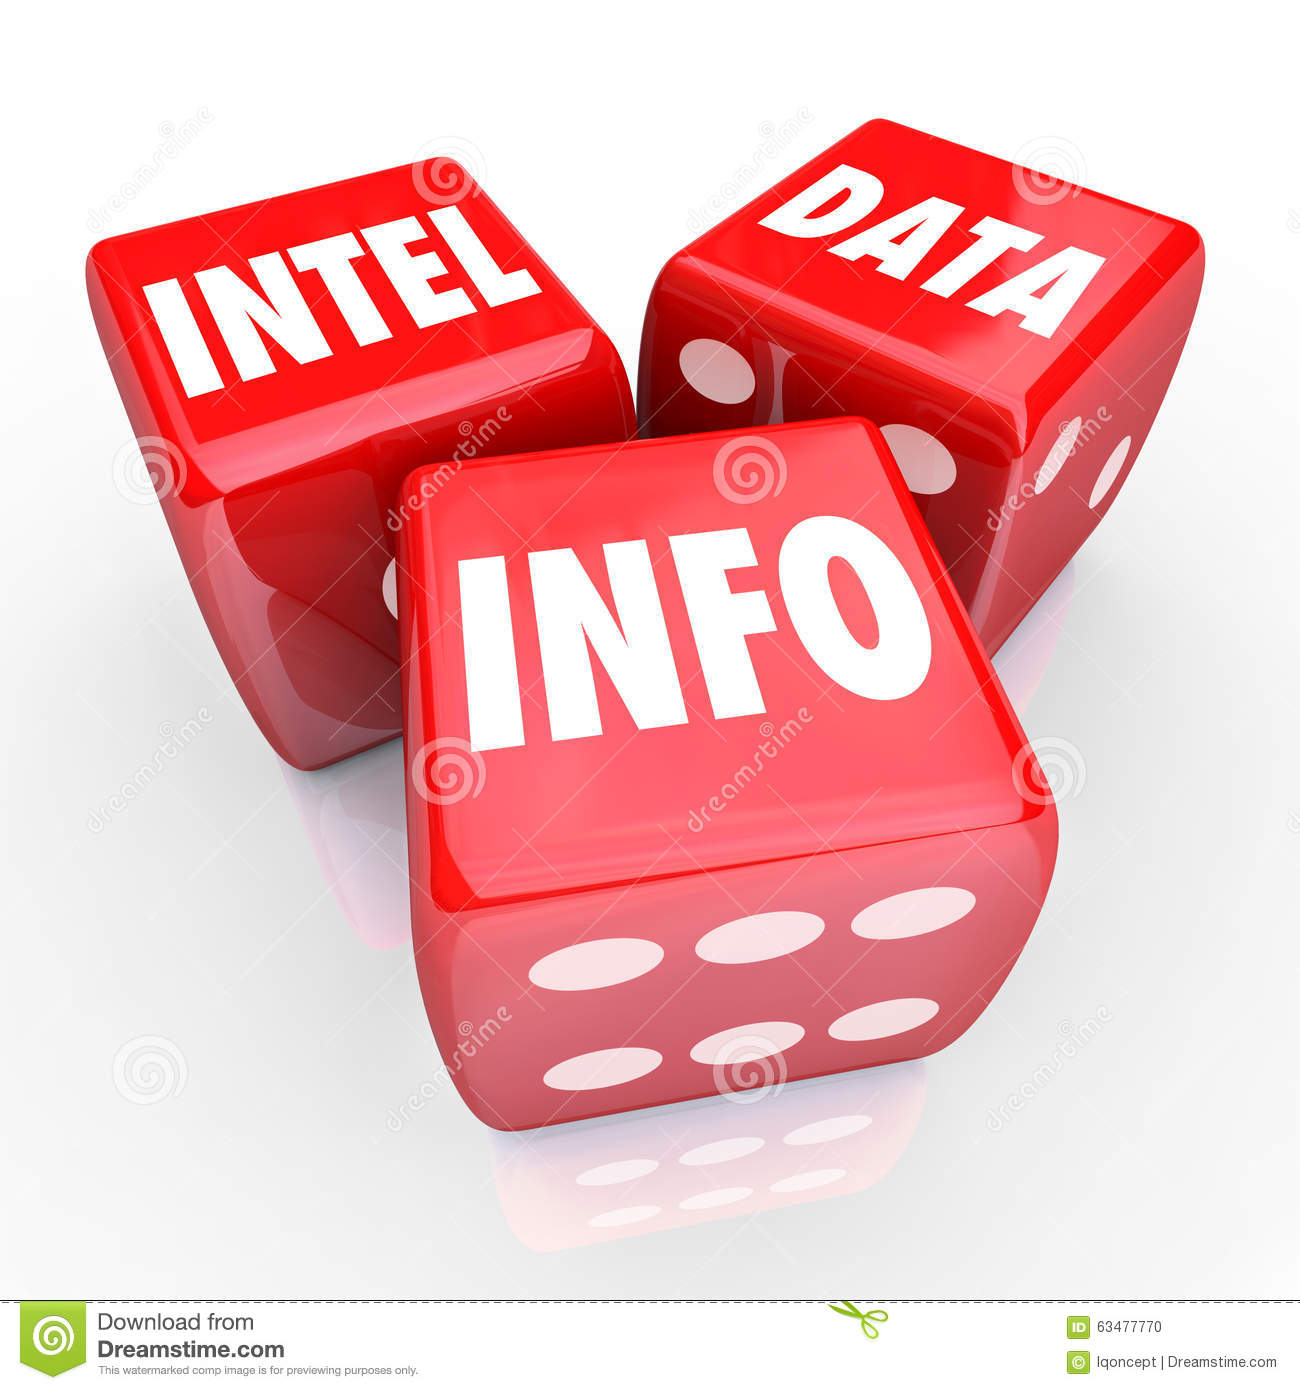 INTEL INFORMATION ABOUT THE AGARTHAN AND THE CHINESE WHITE DRAGON RELEASING THE 800 Gold backed for Humanity Intel-data-info-red-dice-words-find-information-three-to-illustrate-odds-chances-finding-accurate-facts-63477770